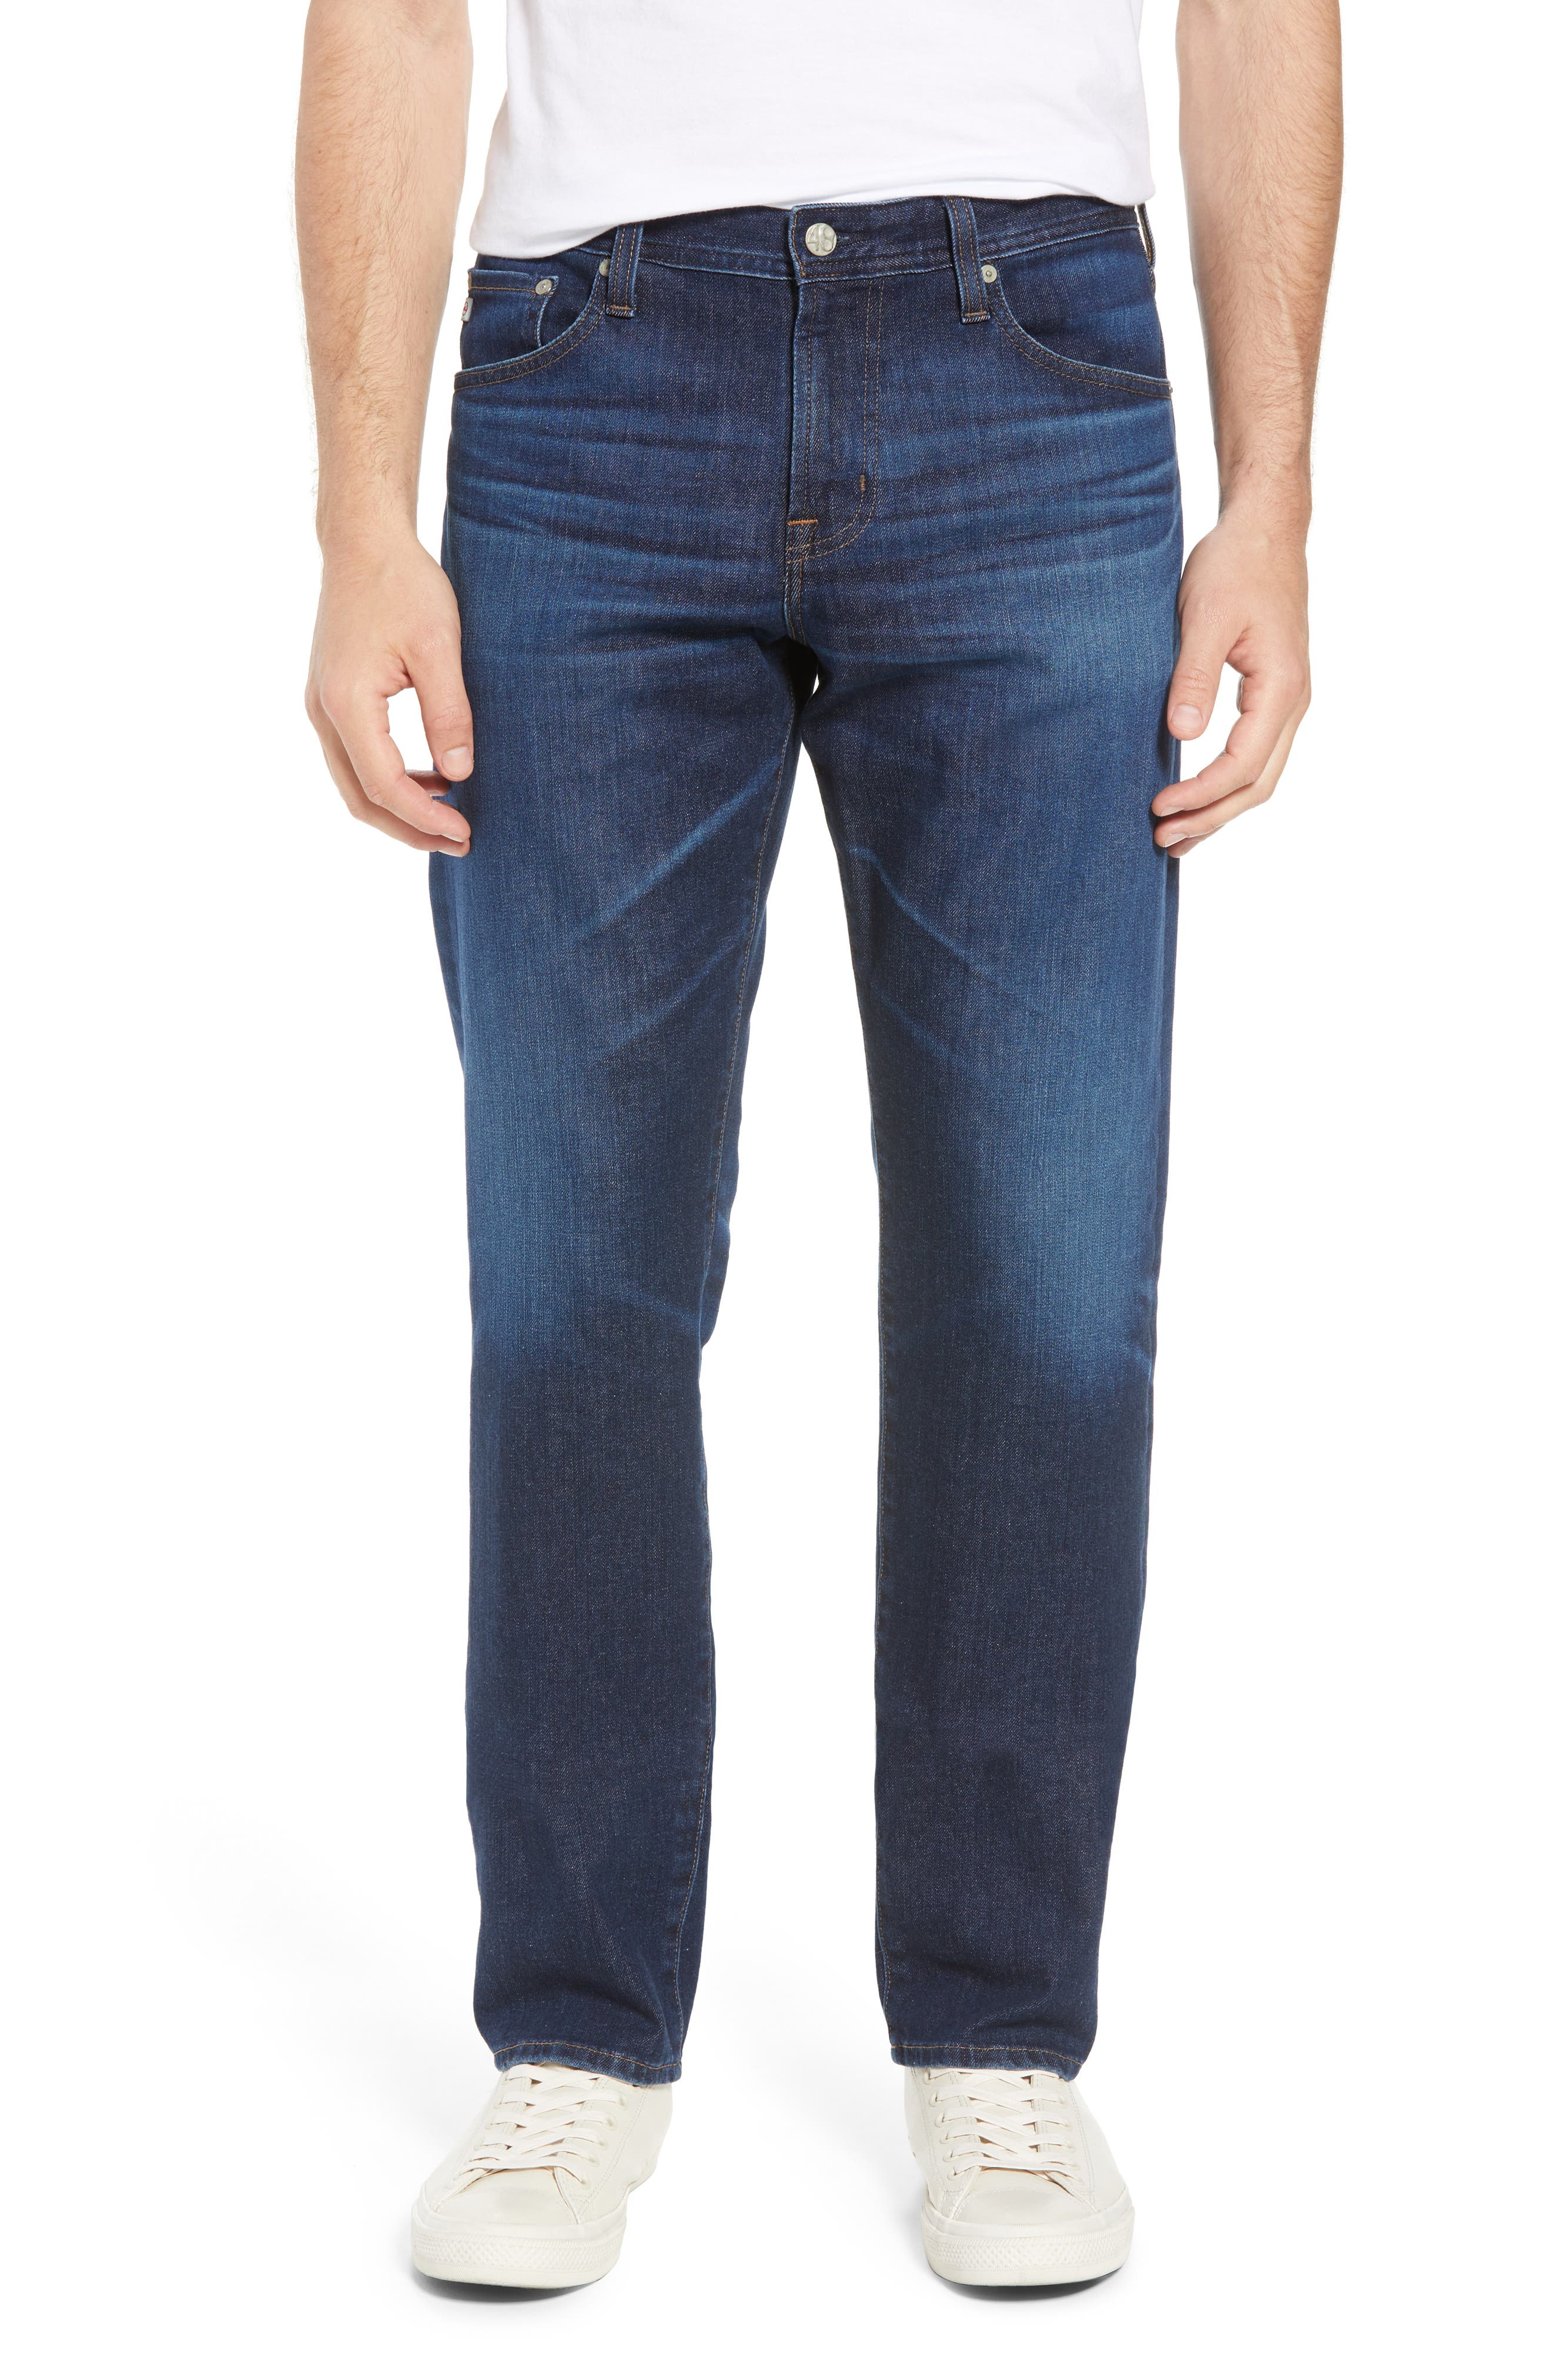 Graduate Slim Straight Fit Jeans,                         Main,                         color, 5 Years Lost Coast